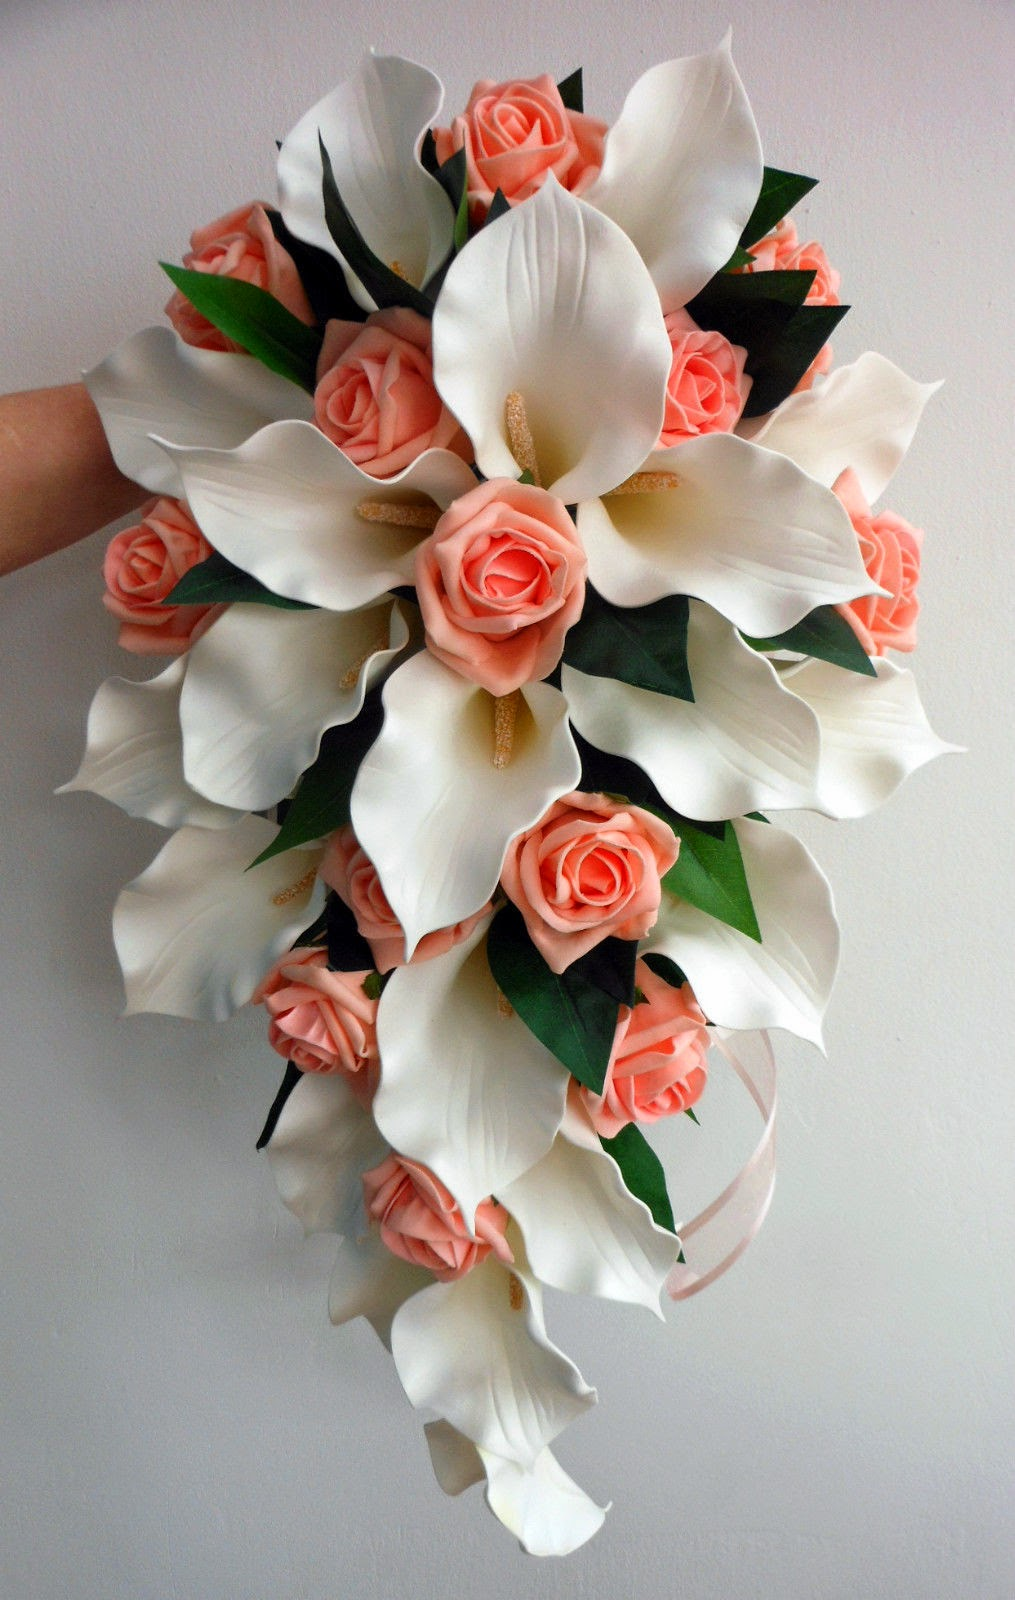 WEDDING BOUQUET SET, REAL TOUCH PINK LILY, IVORY ROSES | eBay |Lily Bridal Bouquets